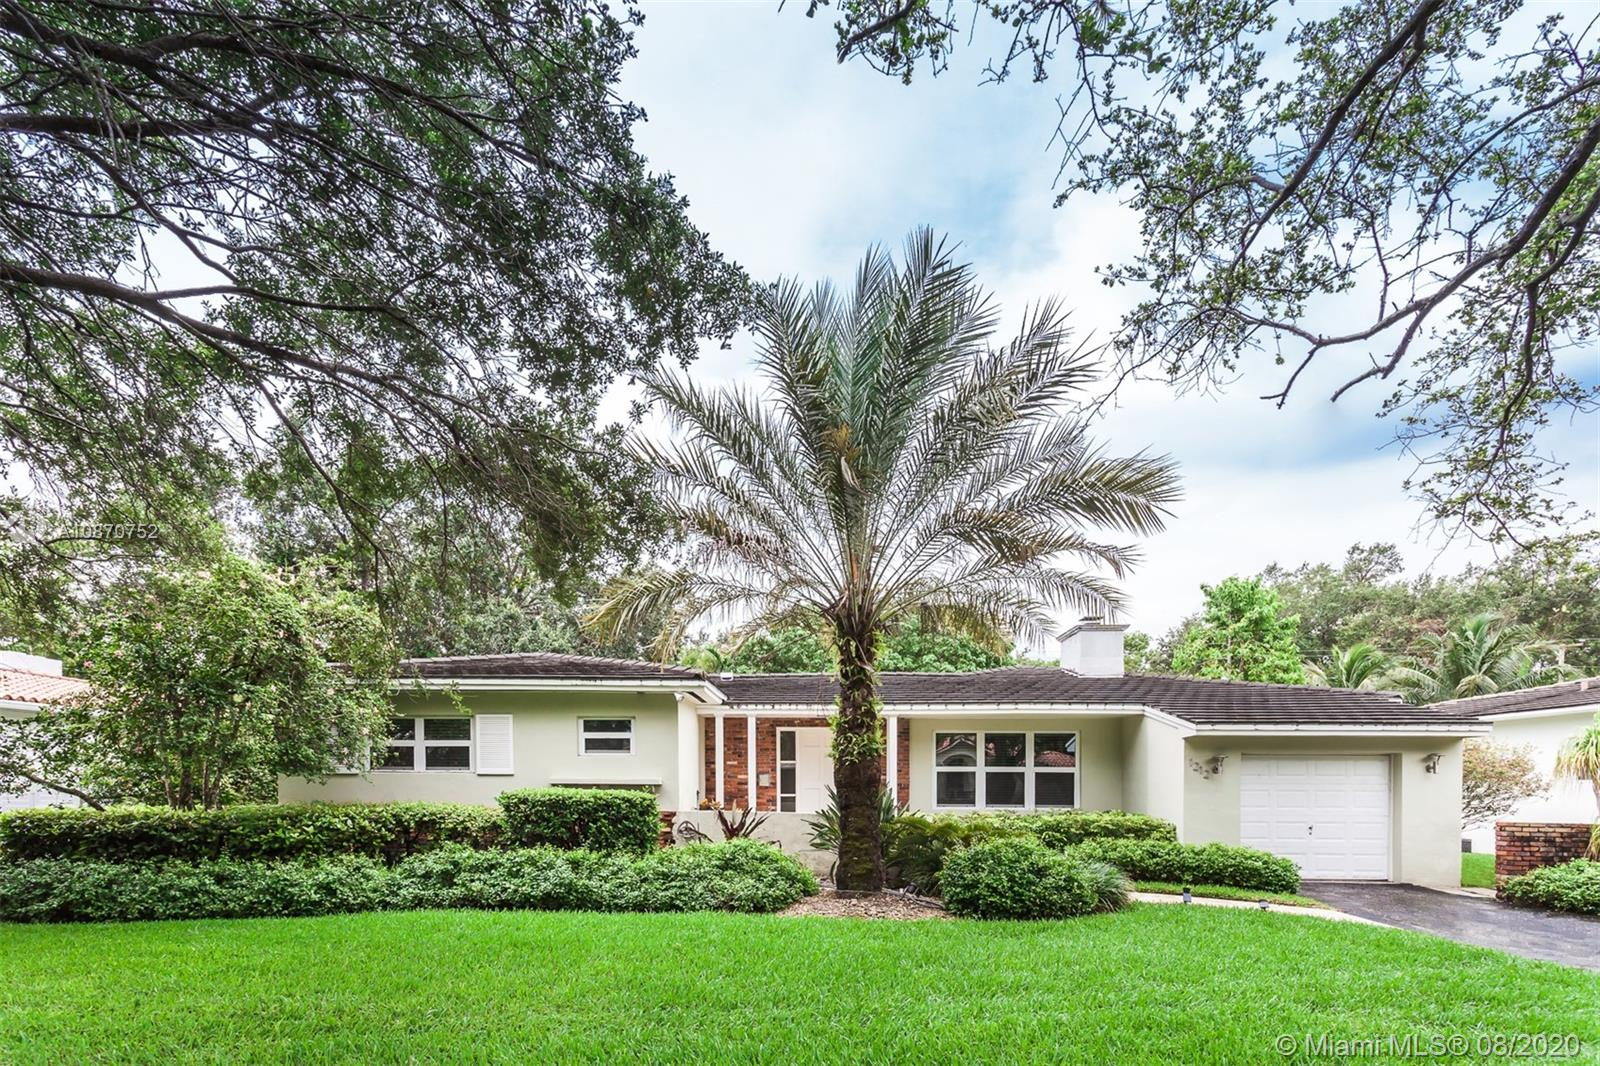 1212 Andora Ave, Coral Gables, Florida 33146, 3 Bedrooms Bedrooms, ,2 BathroomsBathrooms,Residential,For Sale,1212 Andora Ave,A10870752